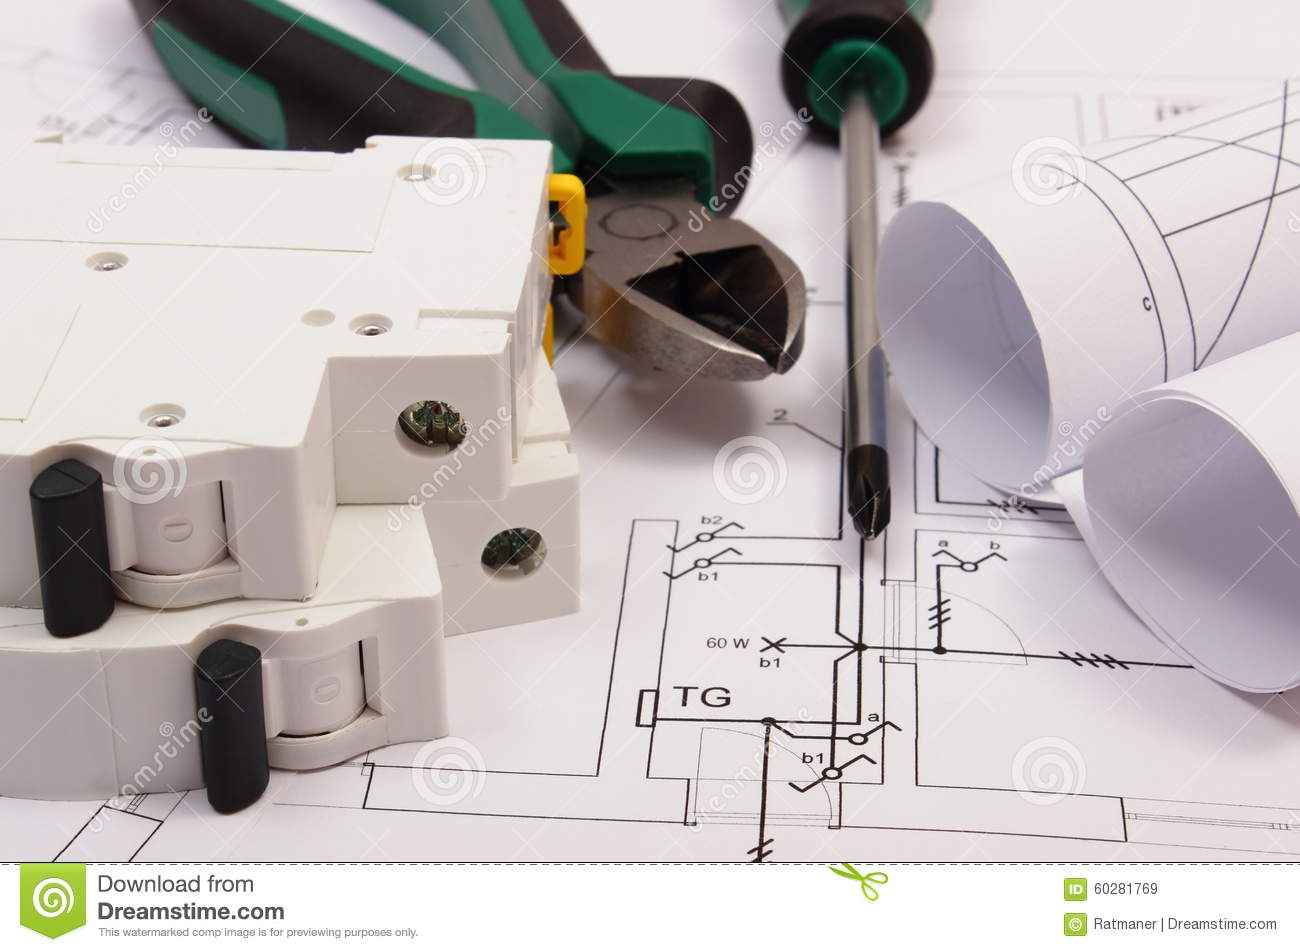 Work Tools Electric Fuse And Rolls Of Diagrams On Construction Electrical Drawing House